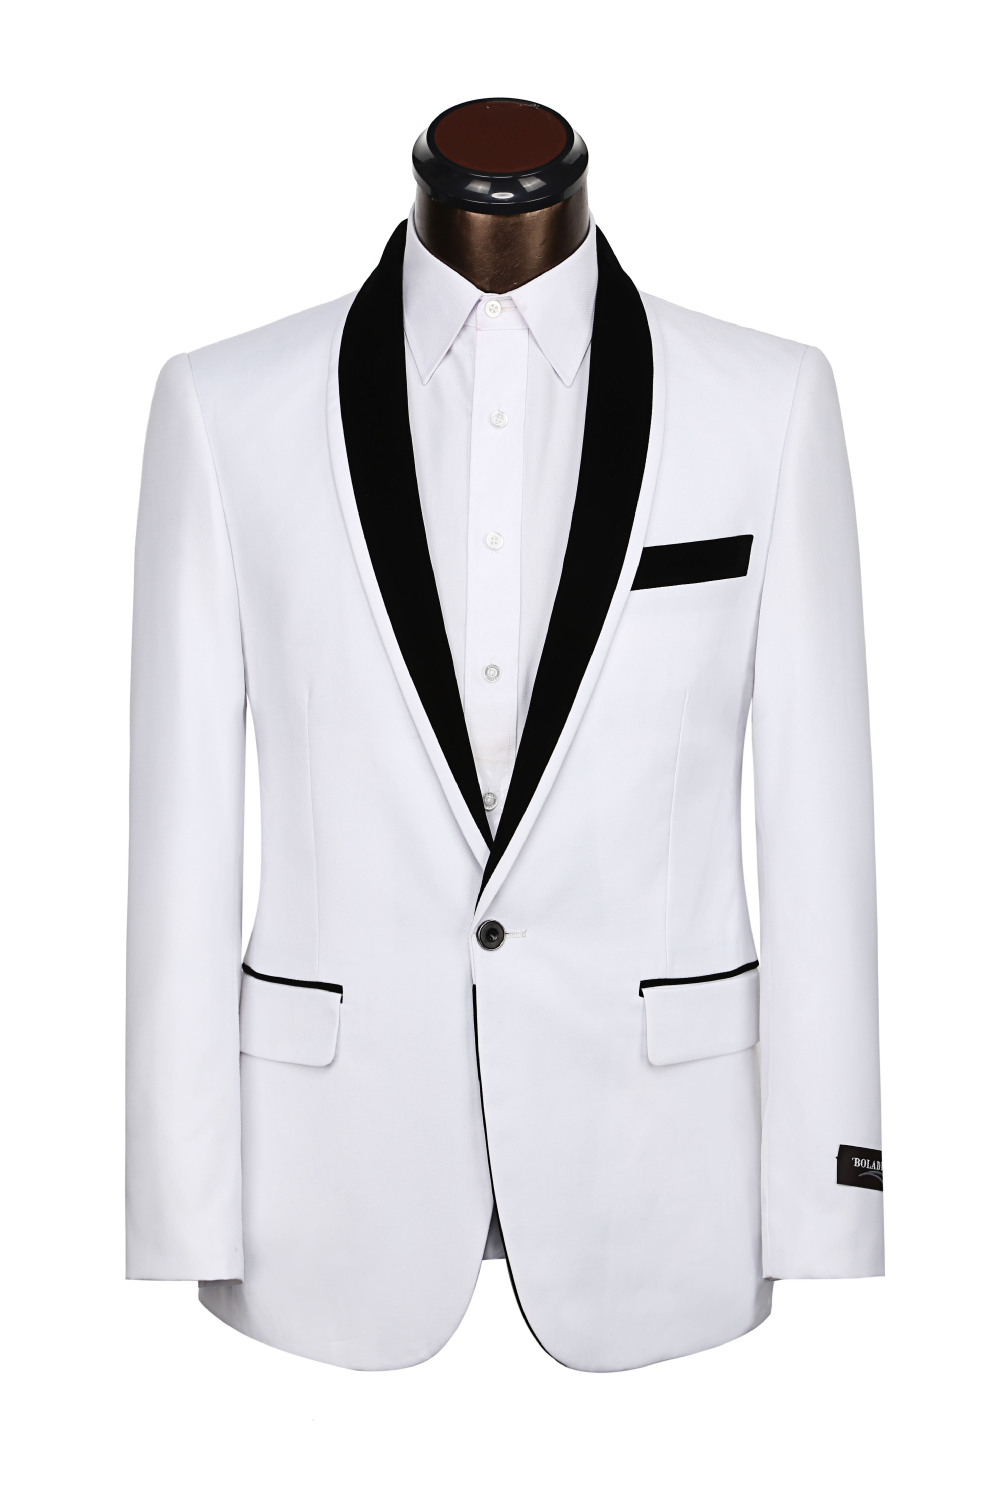 White Groom Wedding Dress Men Suits Buy Dress Men Suits Groom Wedding Suit Wedding Suits For Men Product On Alibaba Com